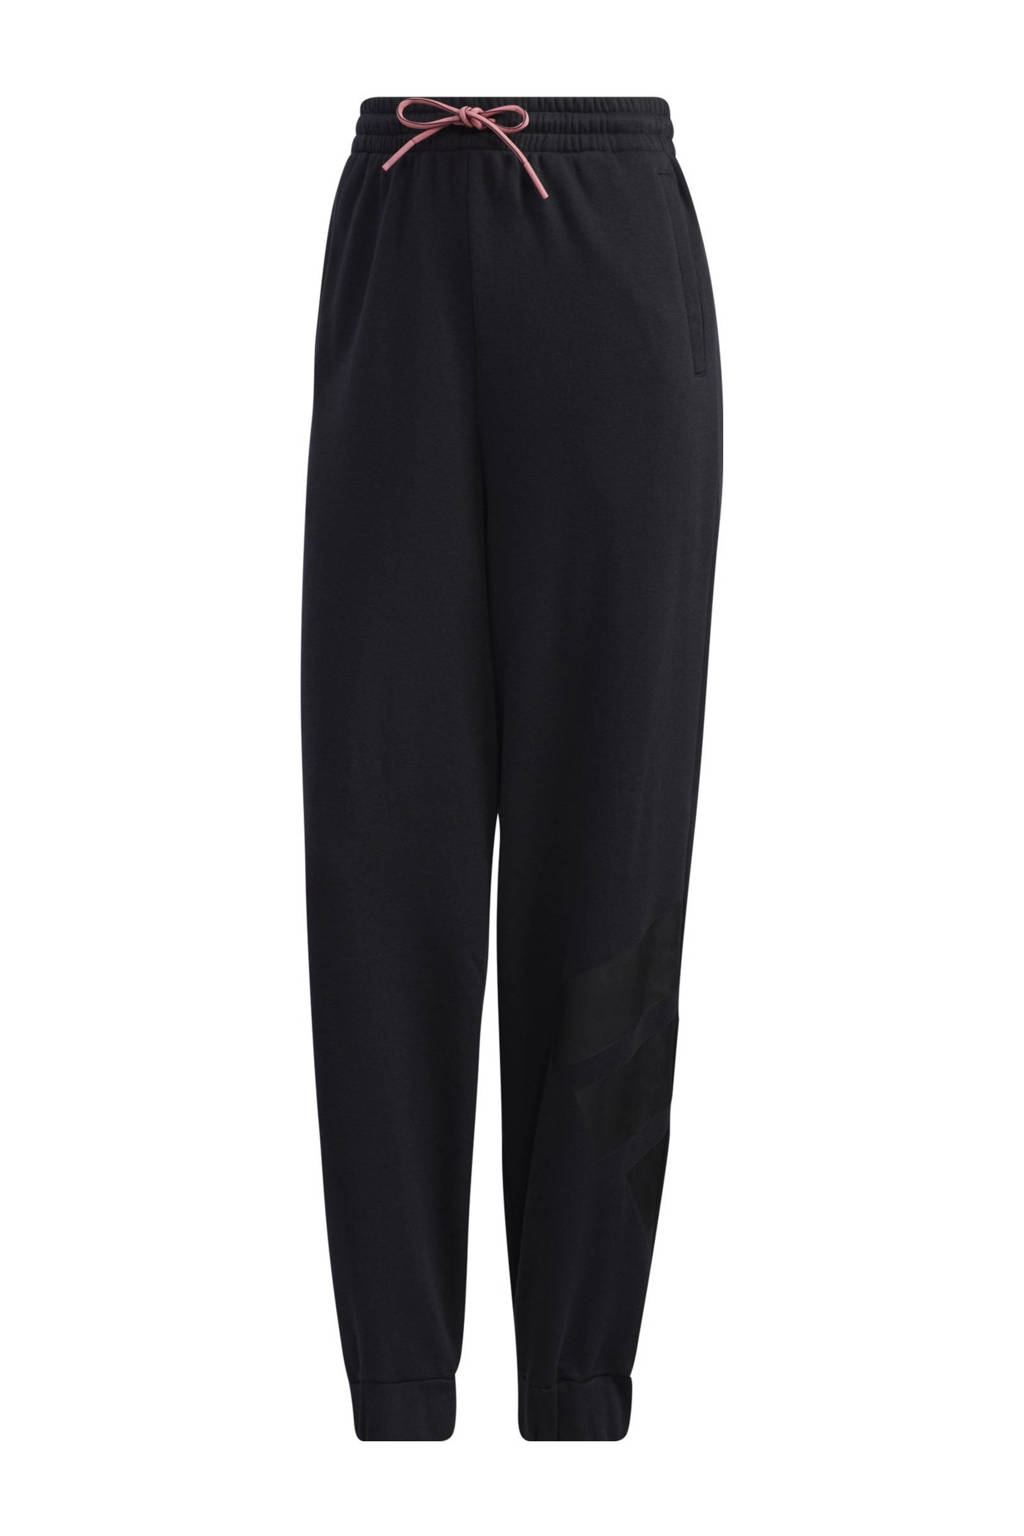 adidas Performance Future Icons joggingbroek zwart, Zwart